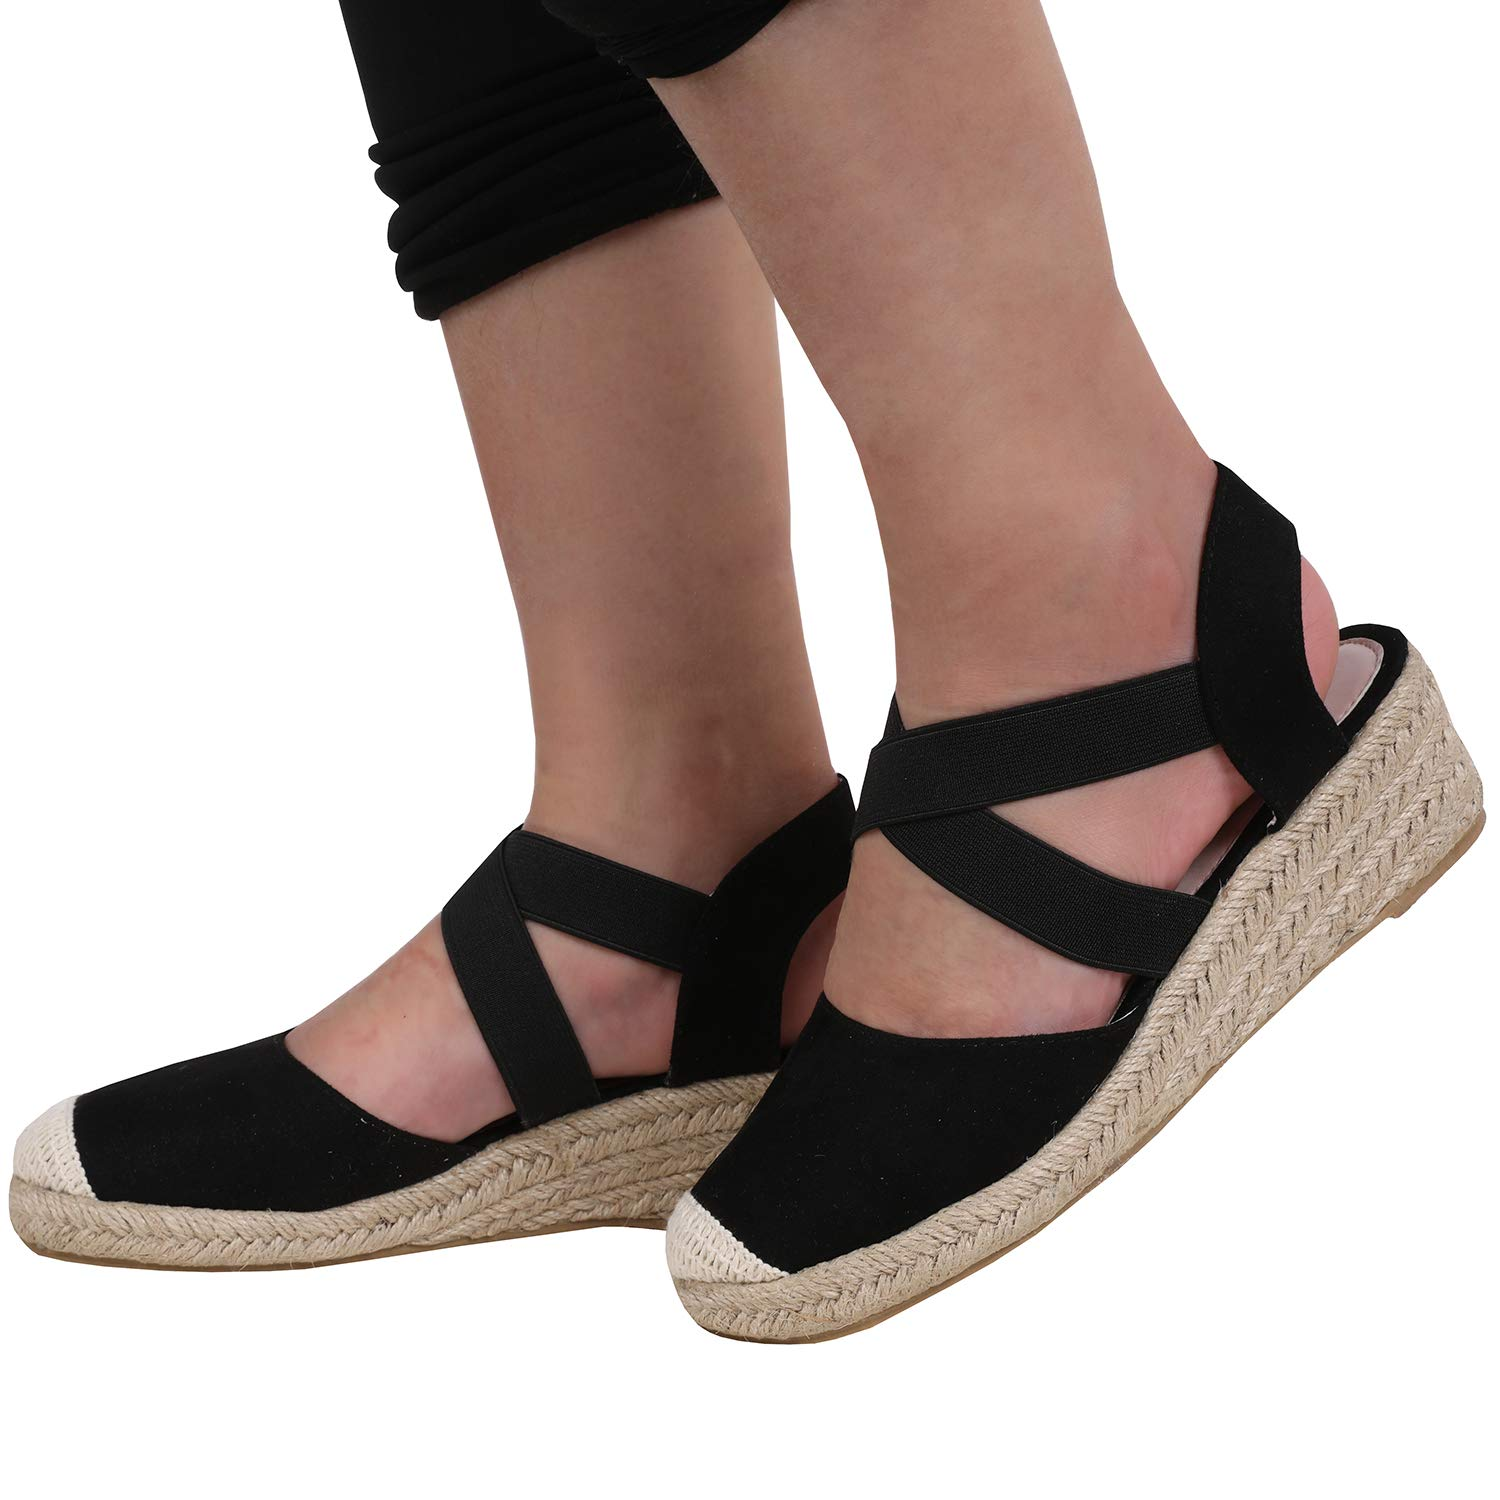 f0ad8b196e31 Amazon.com  Nailyhome Womens Wedge Sandals Espadrilles Heel Slingback  Closed Toe Ankle Crisscross Elastic Band Strap Shoes  Clothing